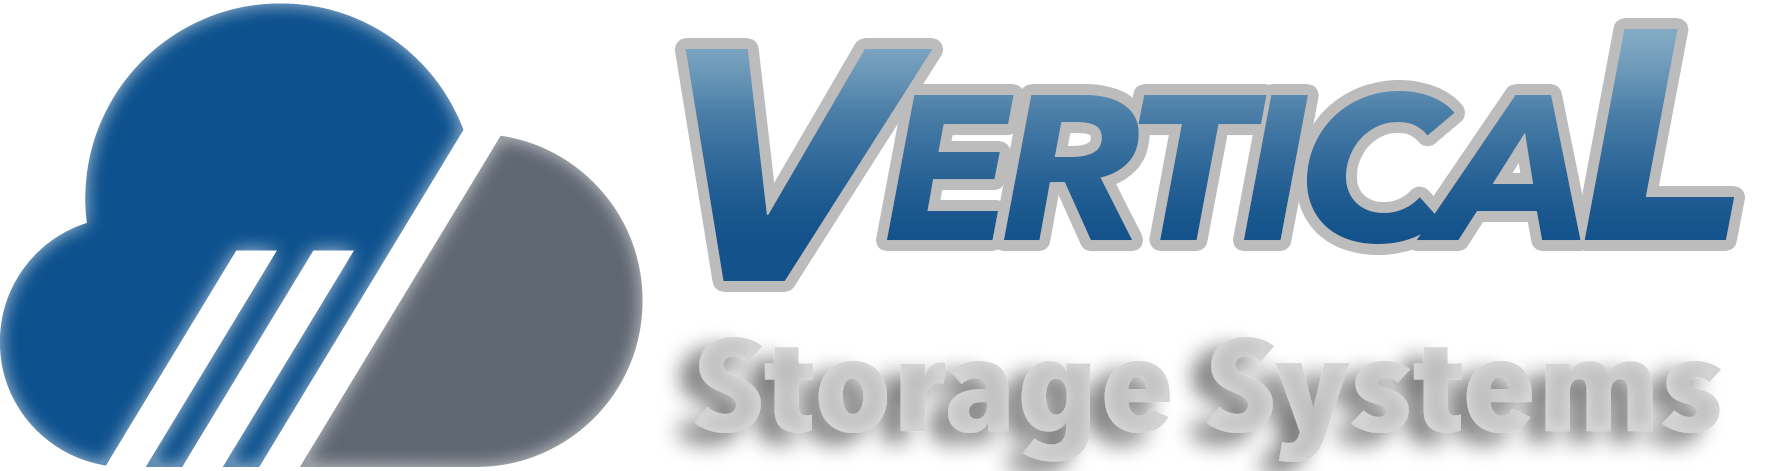 Vertical Storage Systems